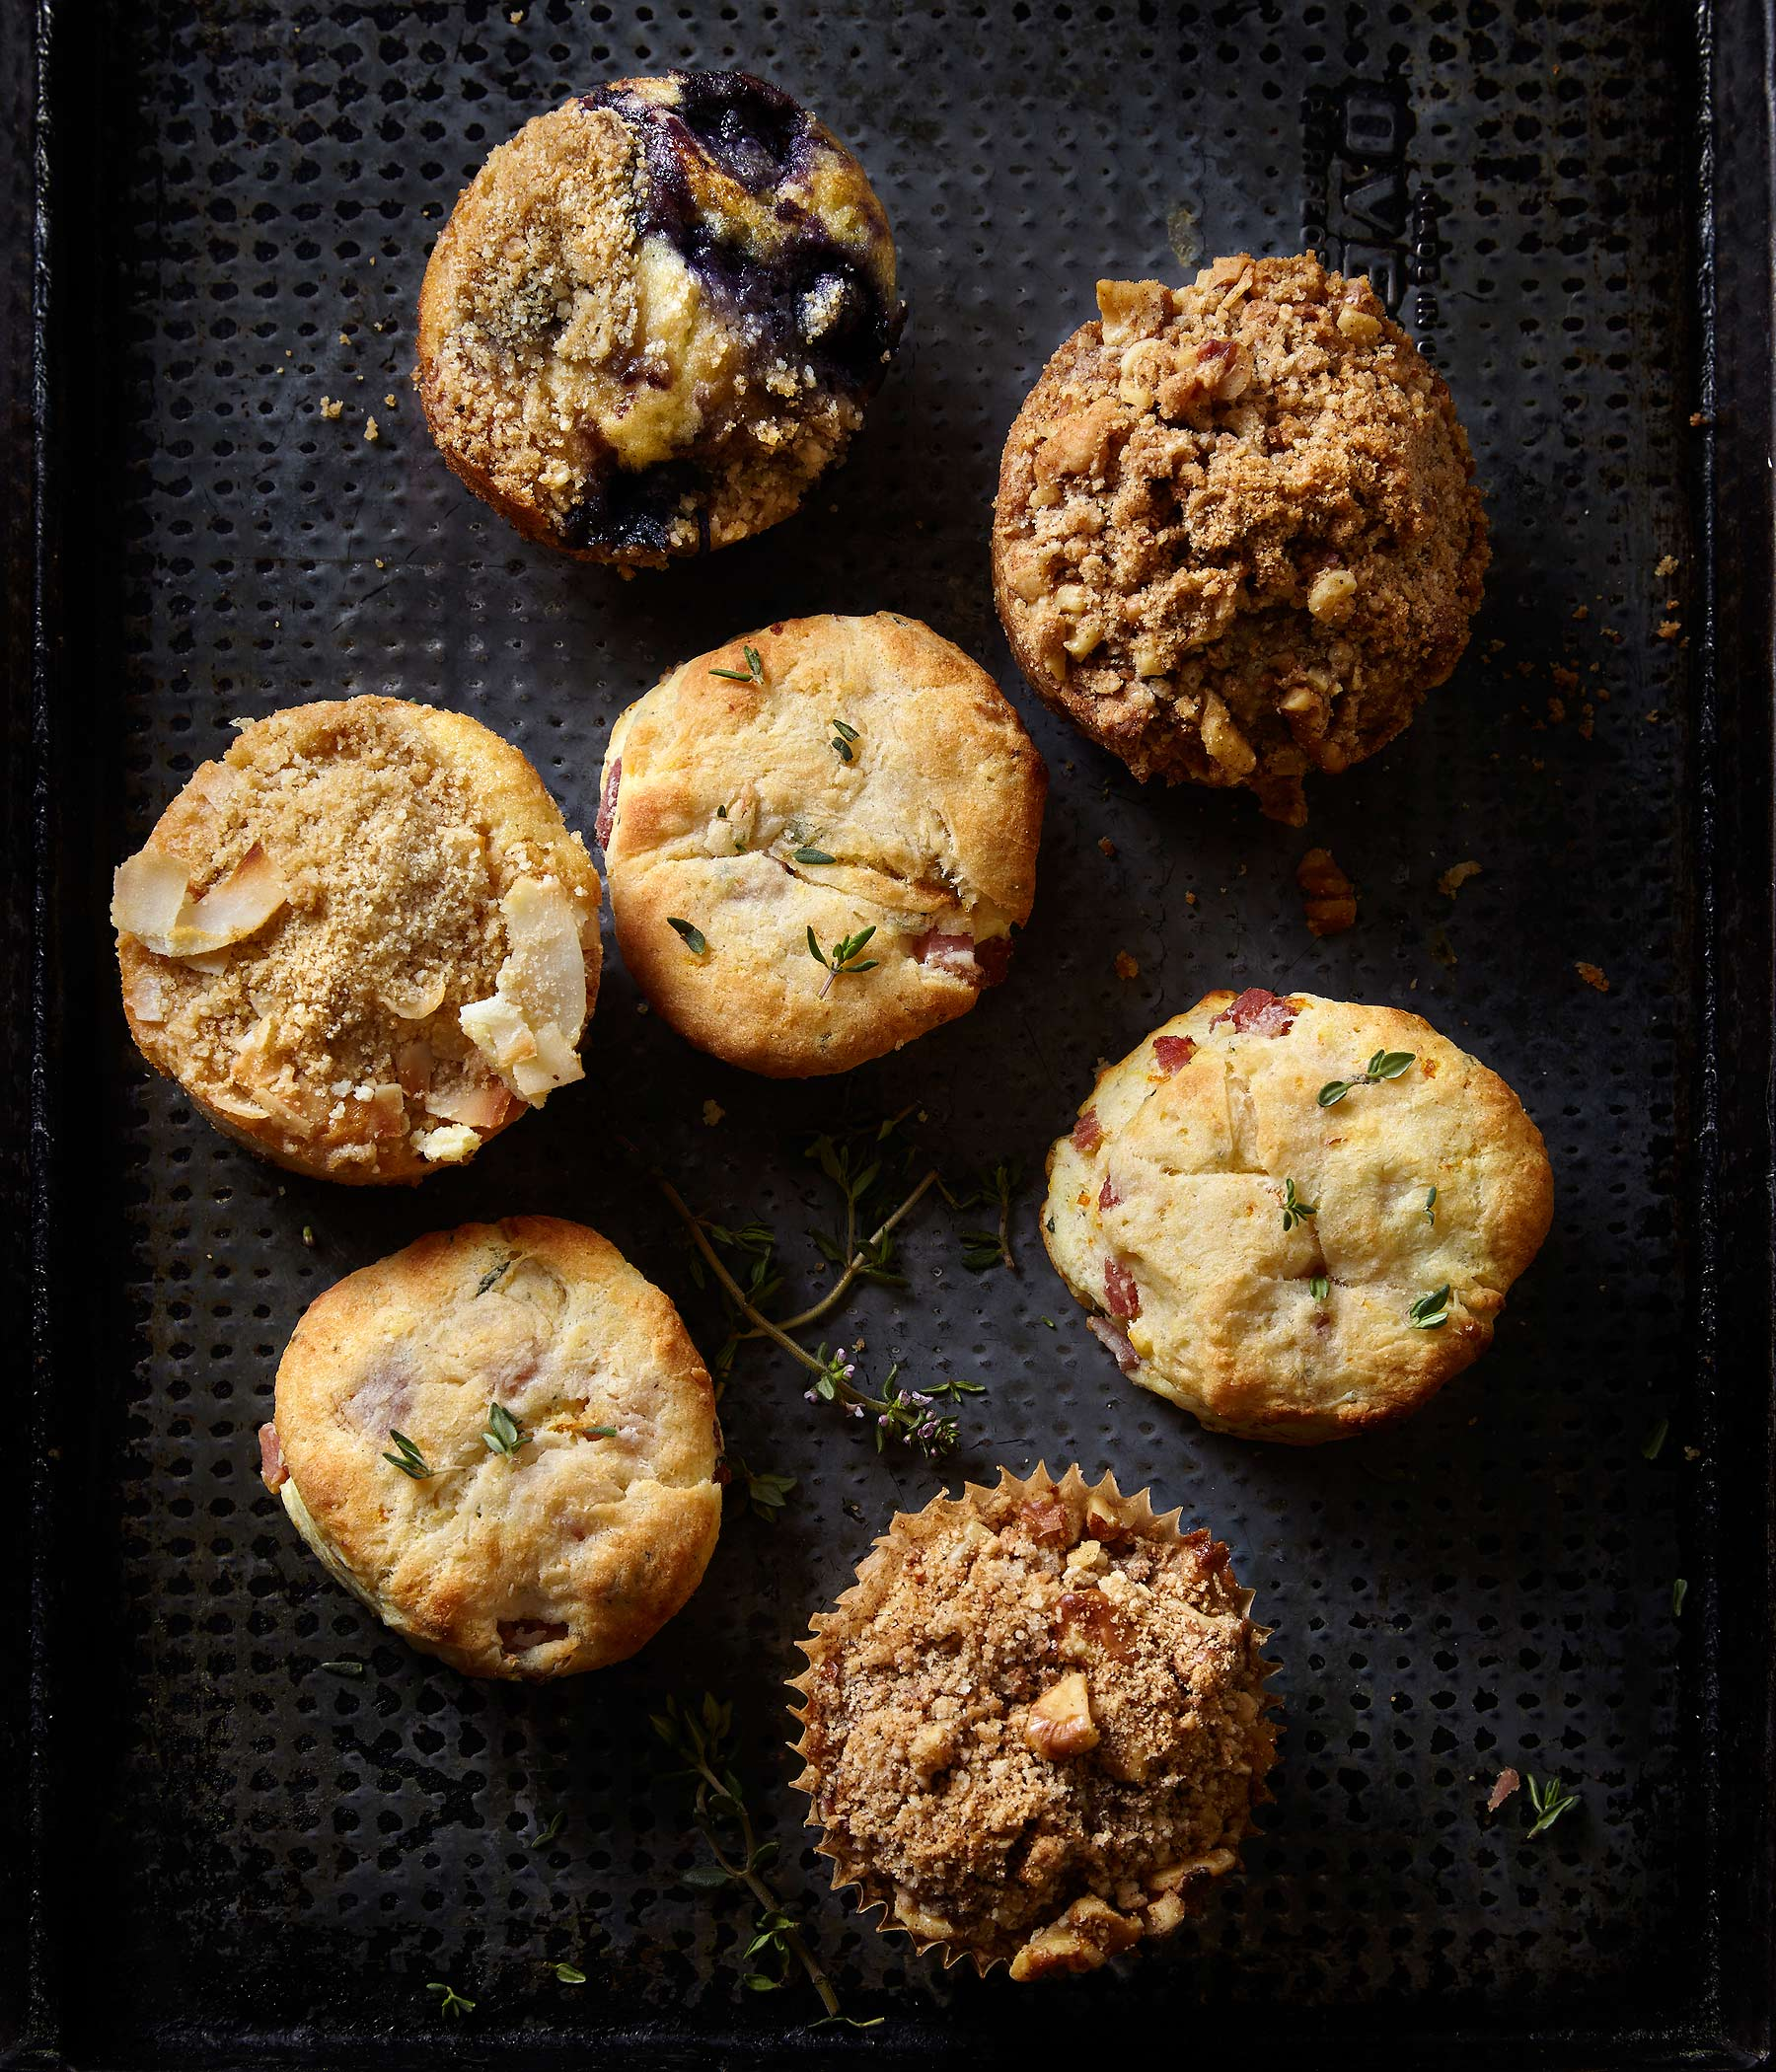 Muffins_and_Biscuits_Extra_152